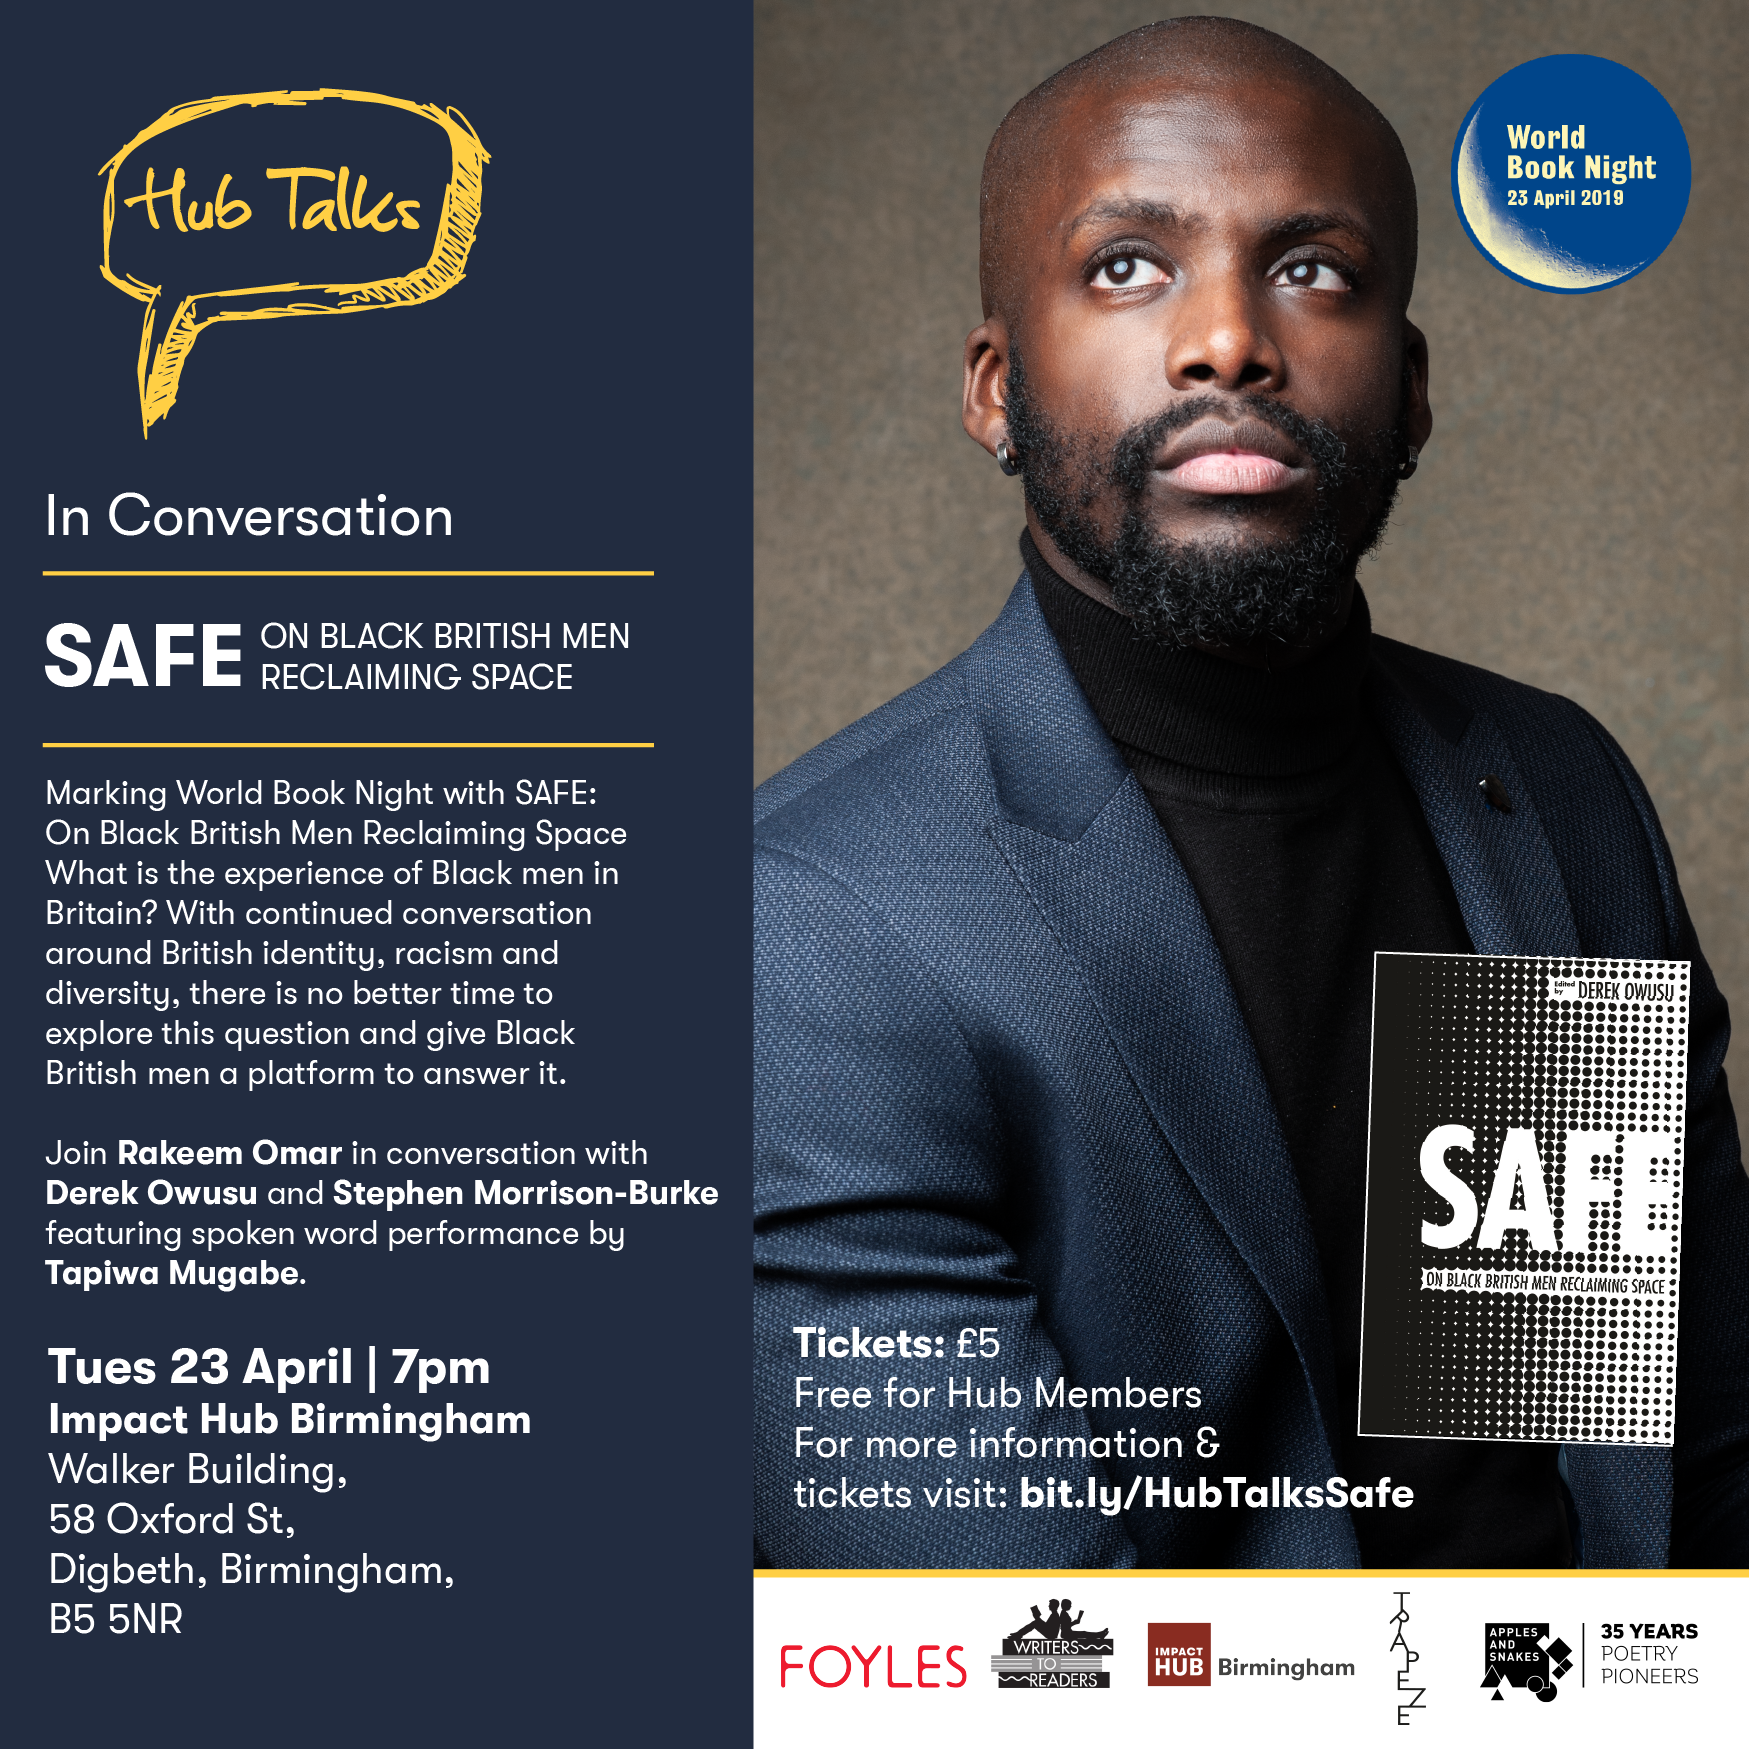 HubTalks: SAFE: On Black British Men Reclaiming Space